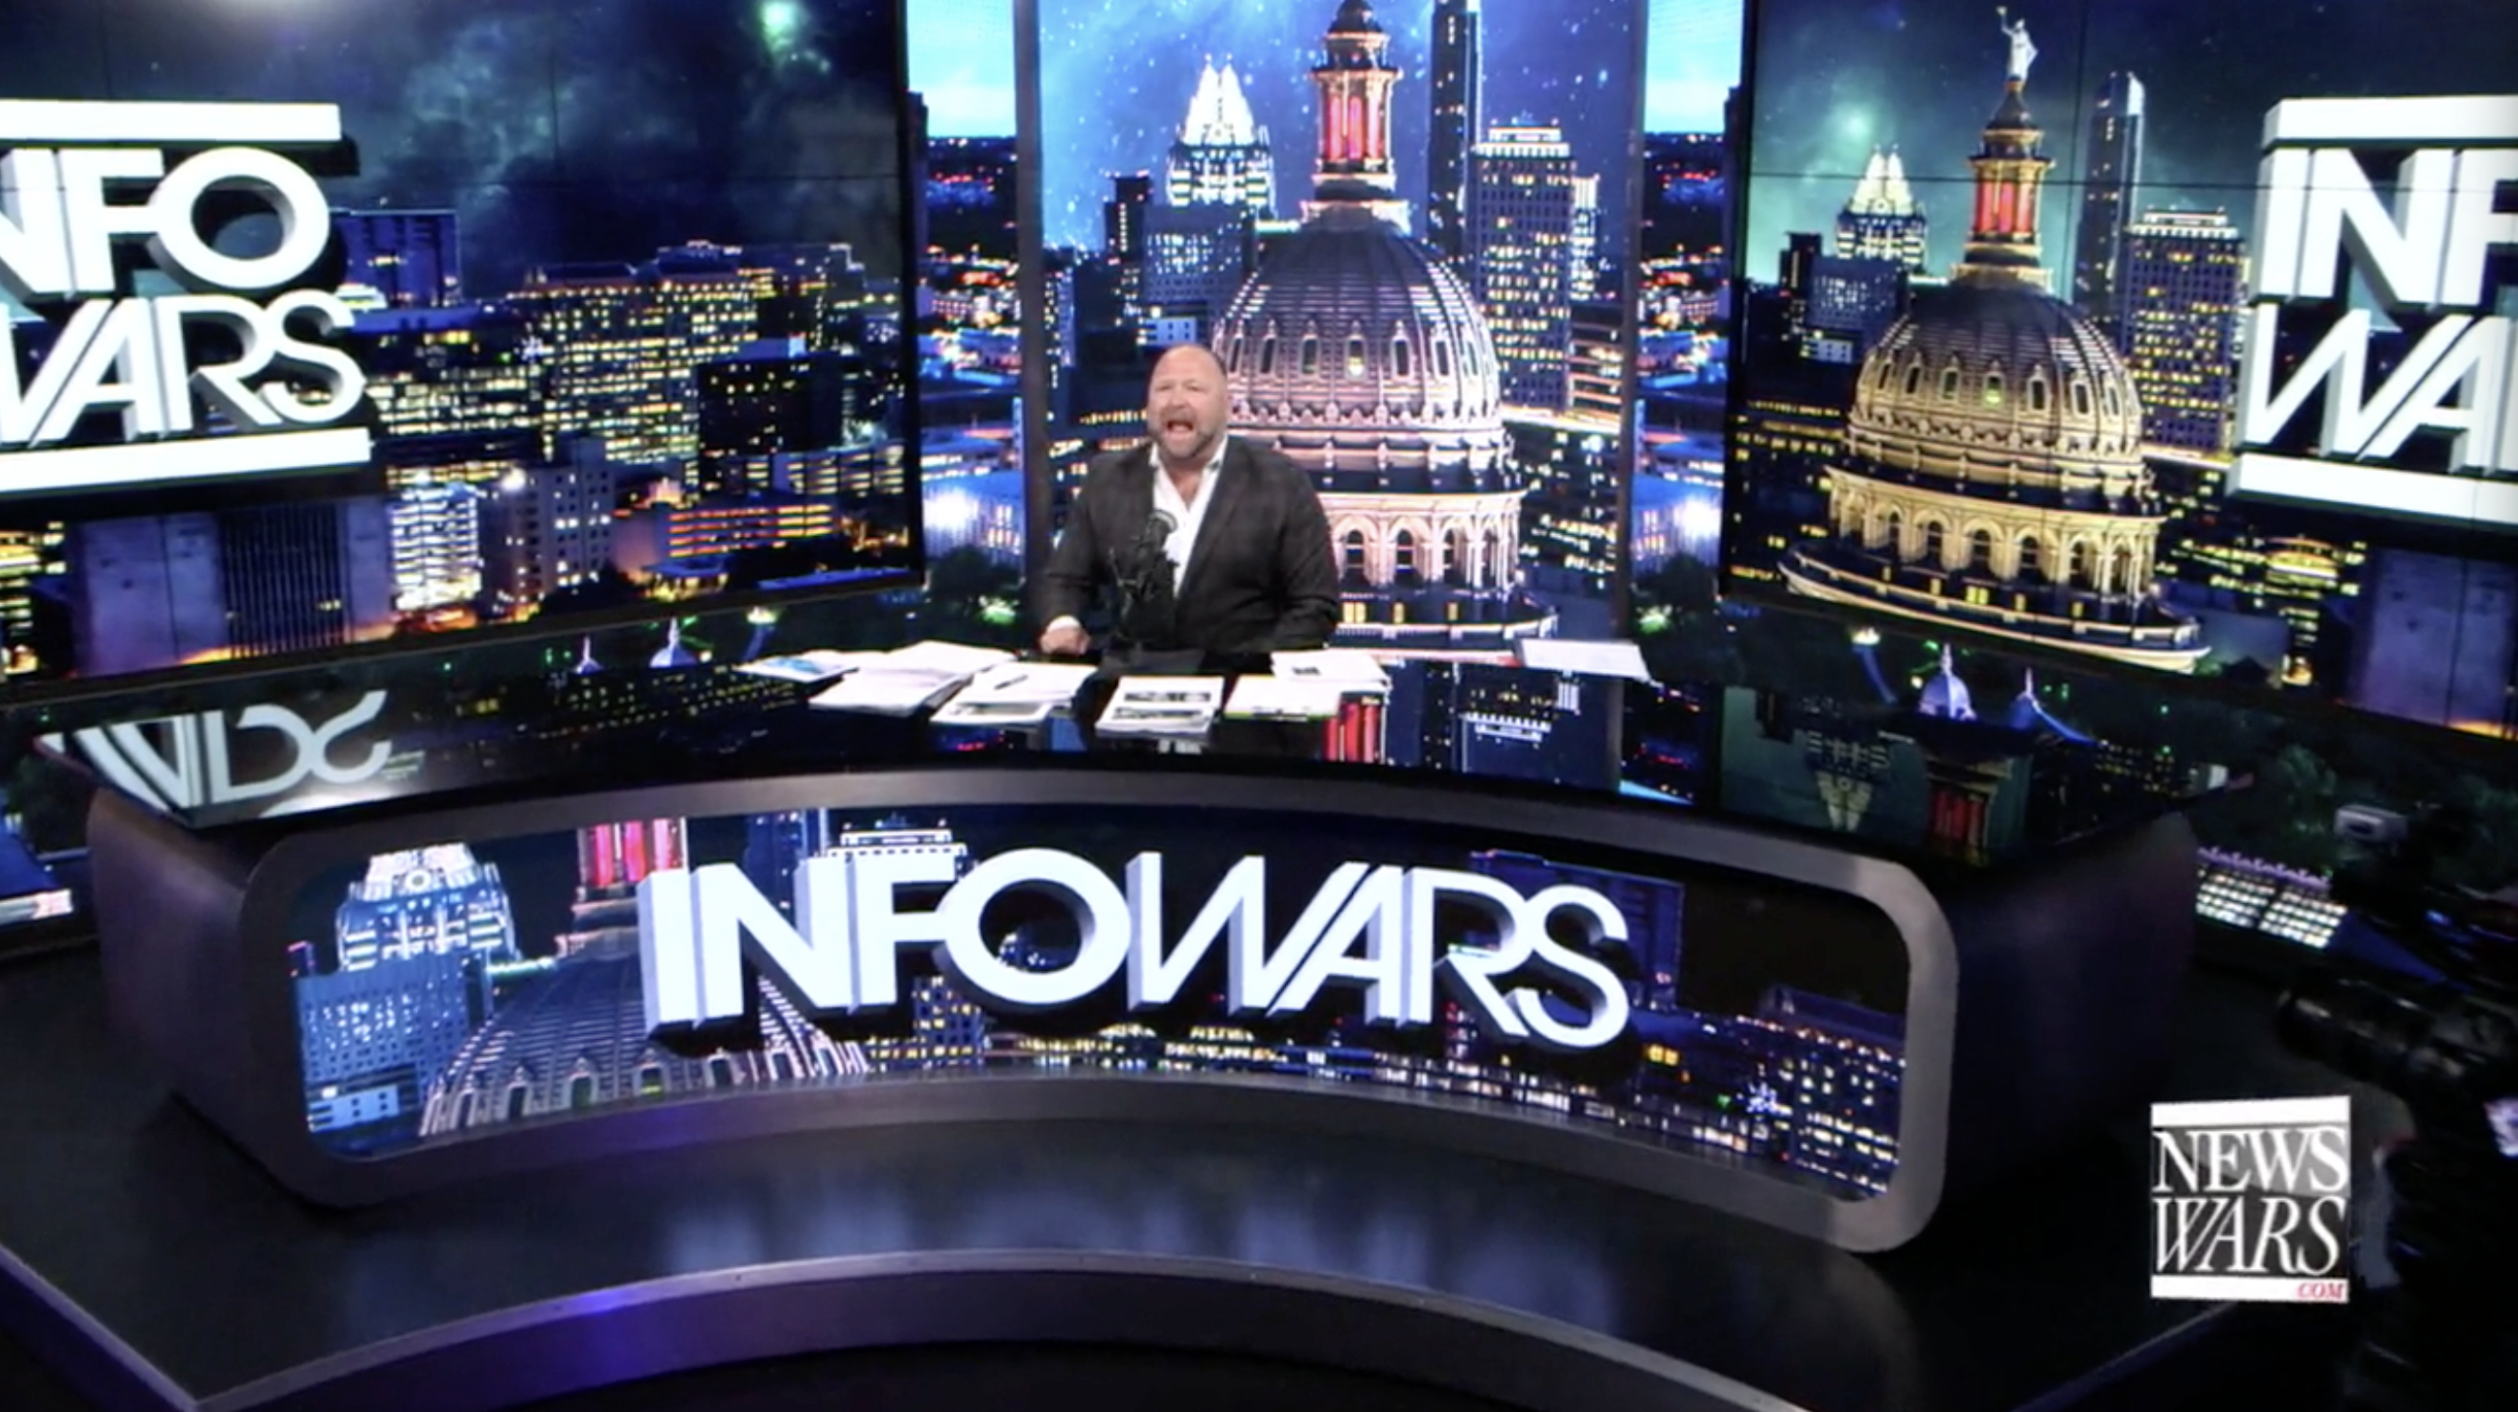 Alex Jones Infowars Studio God July 6th 2020